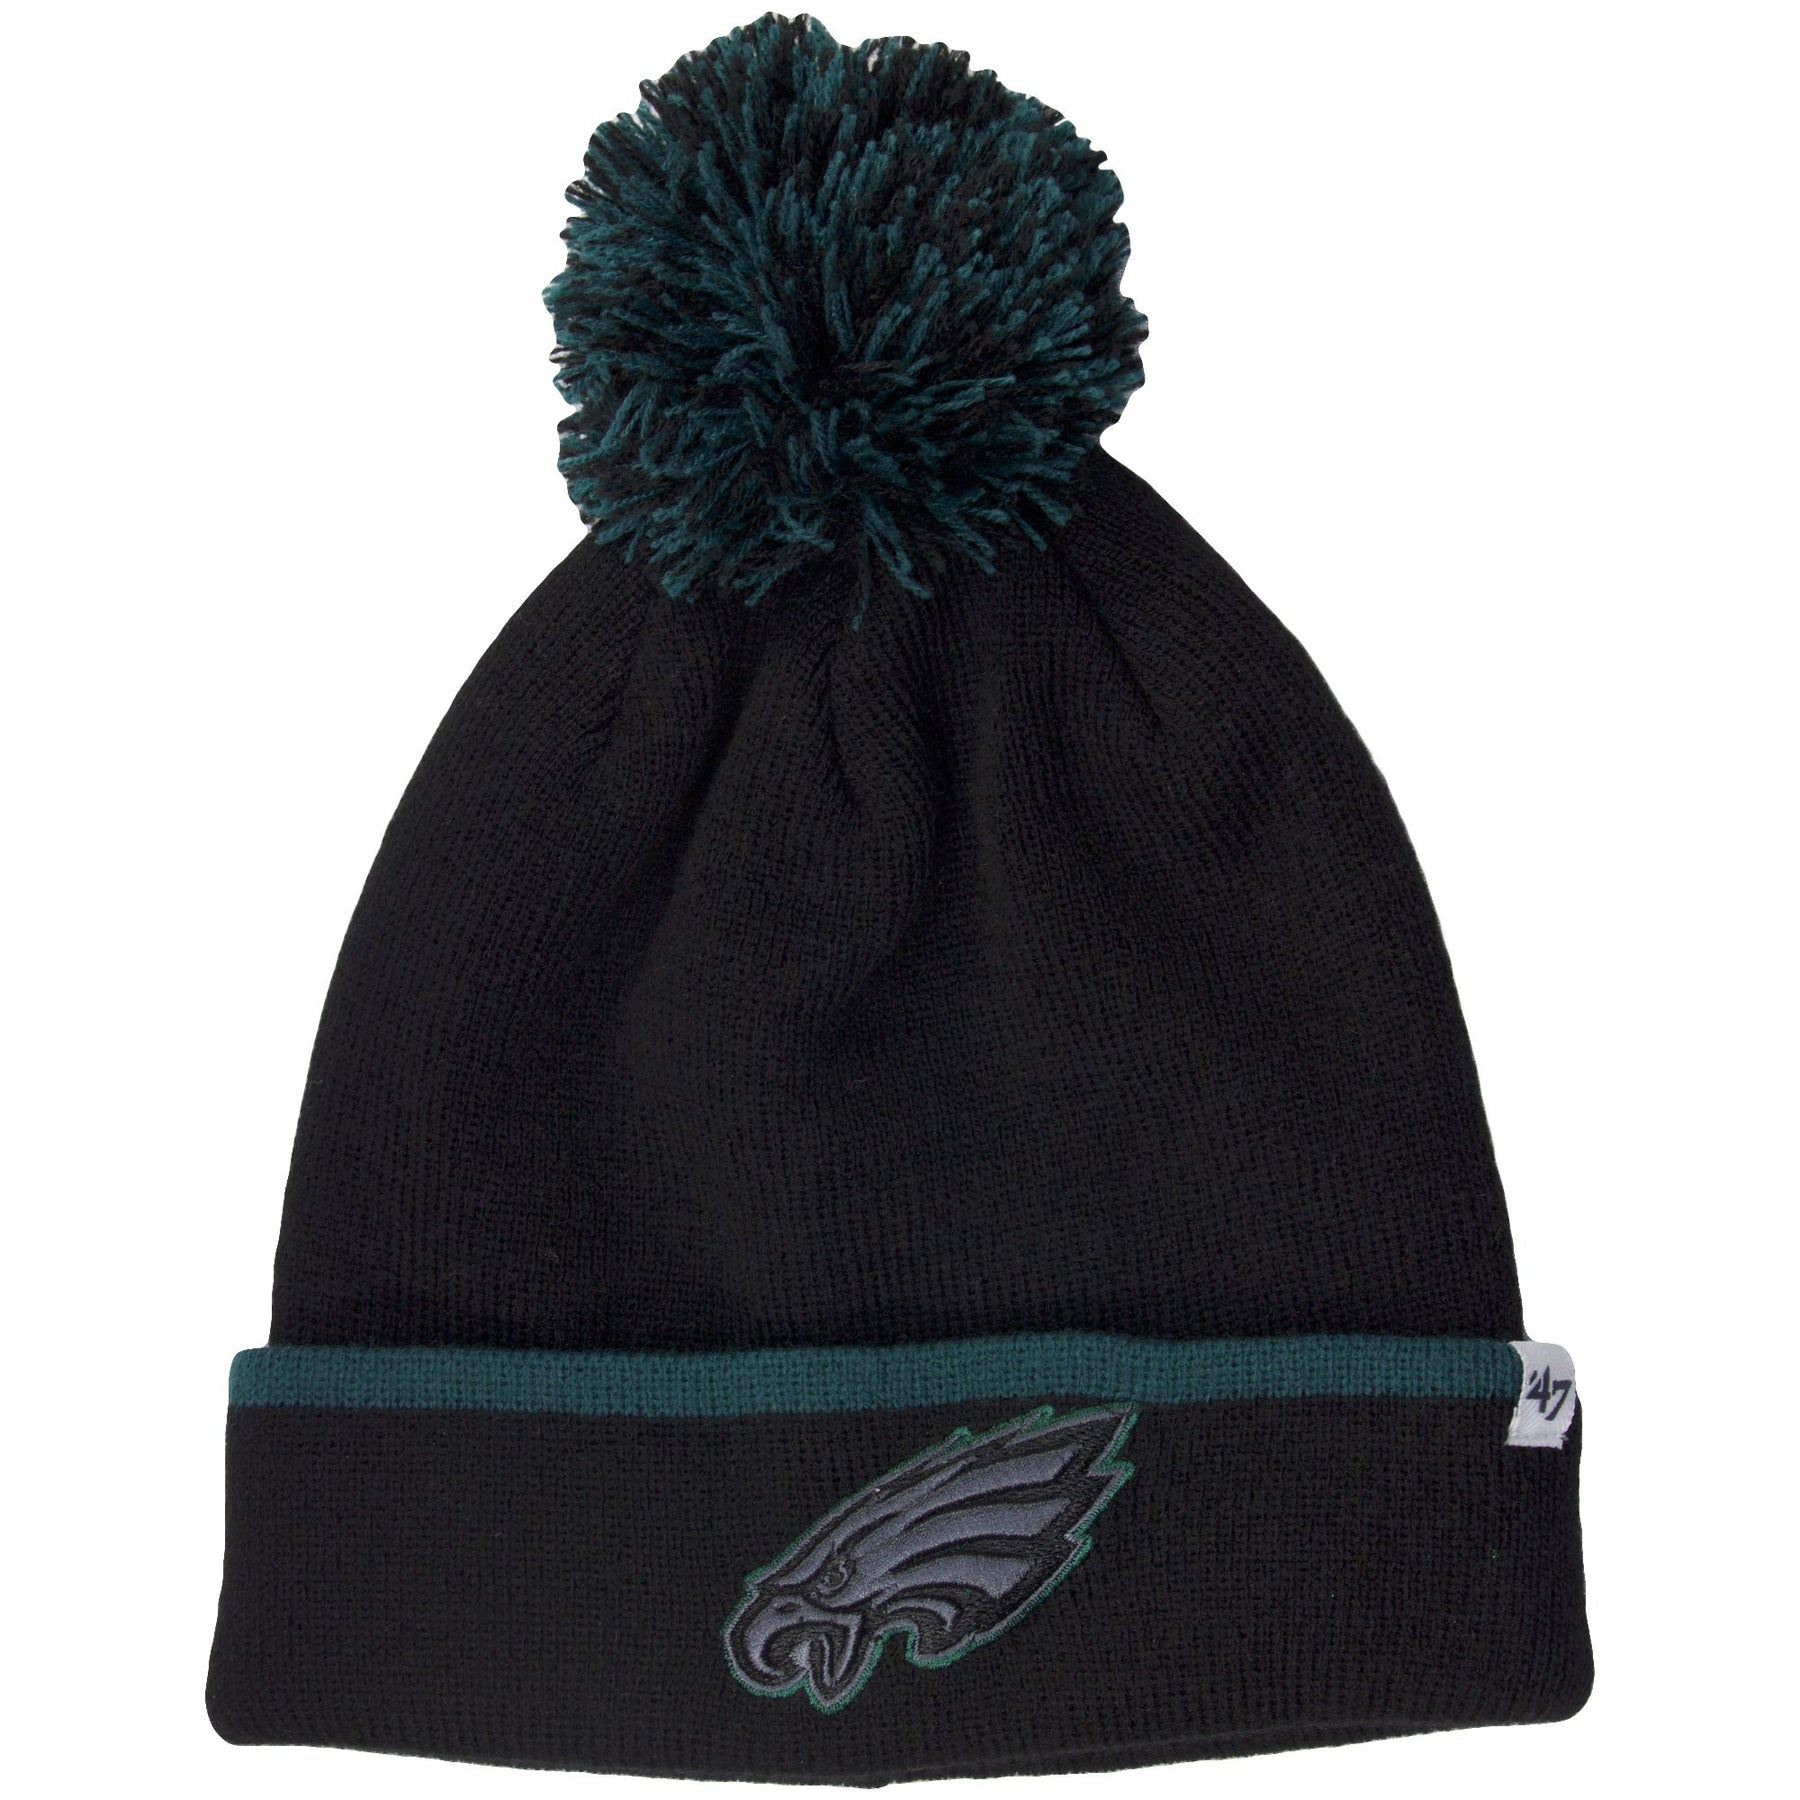 7f5b007360e This Eagles Beanie hat has a black and green pom on top. The current Eagles